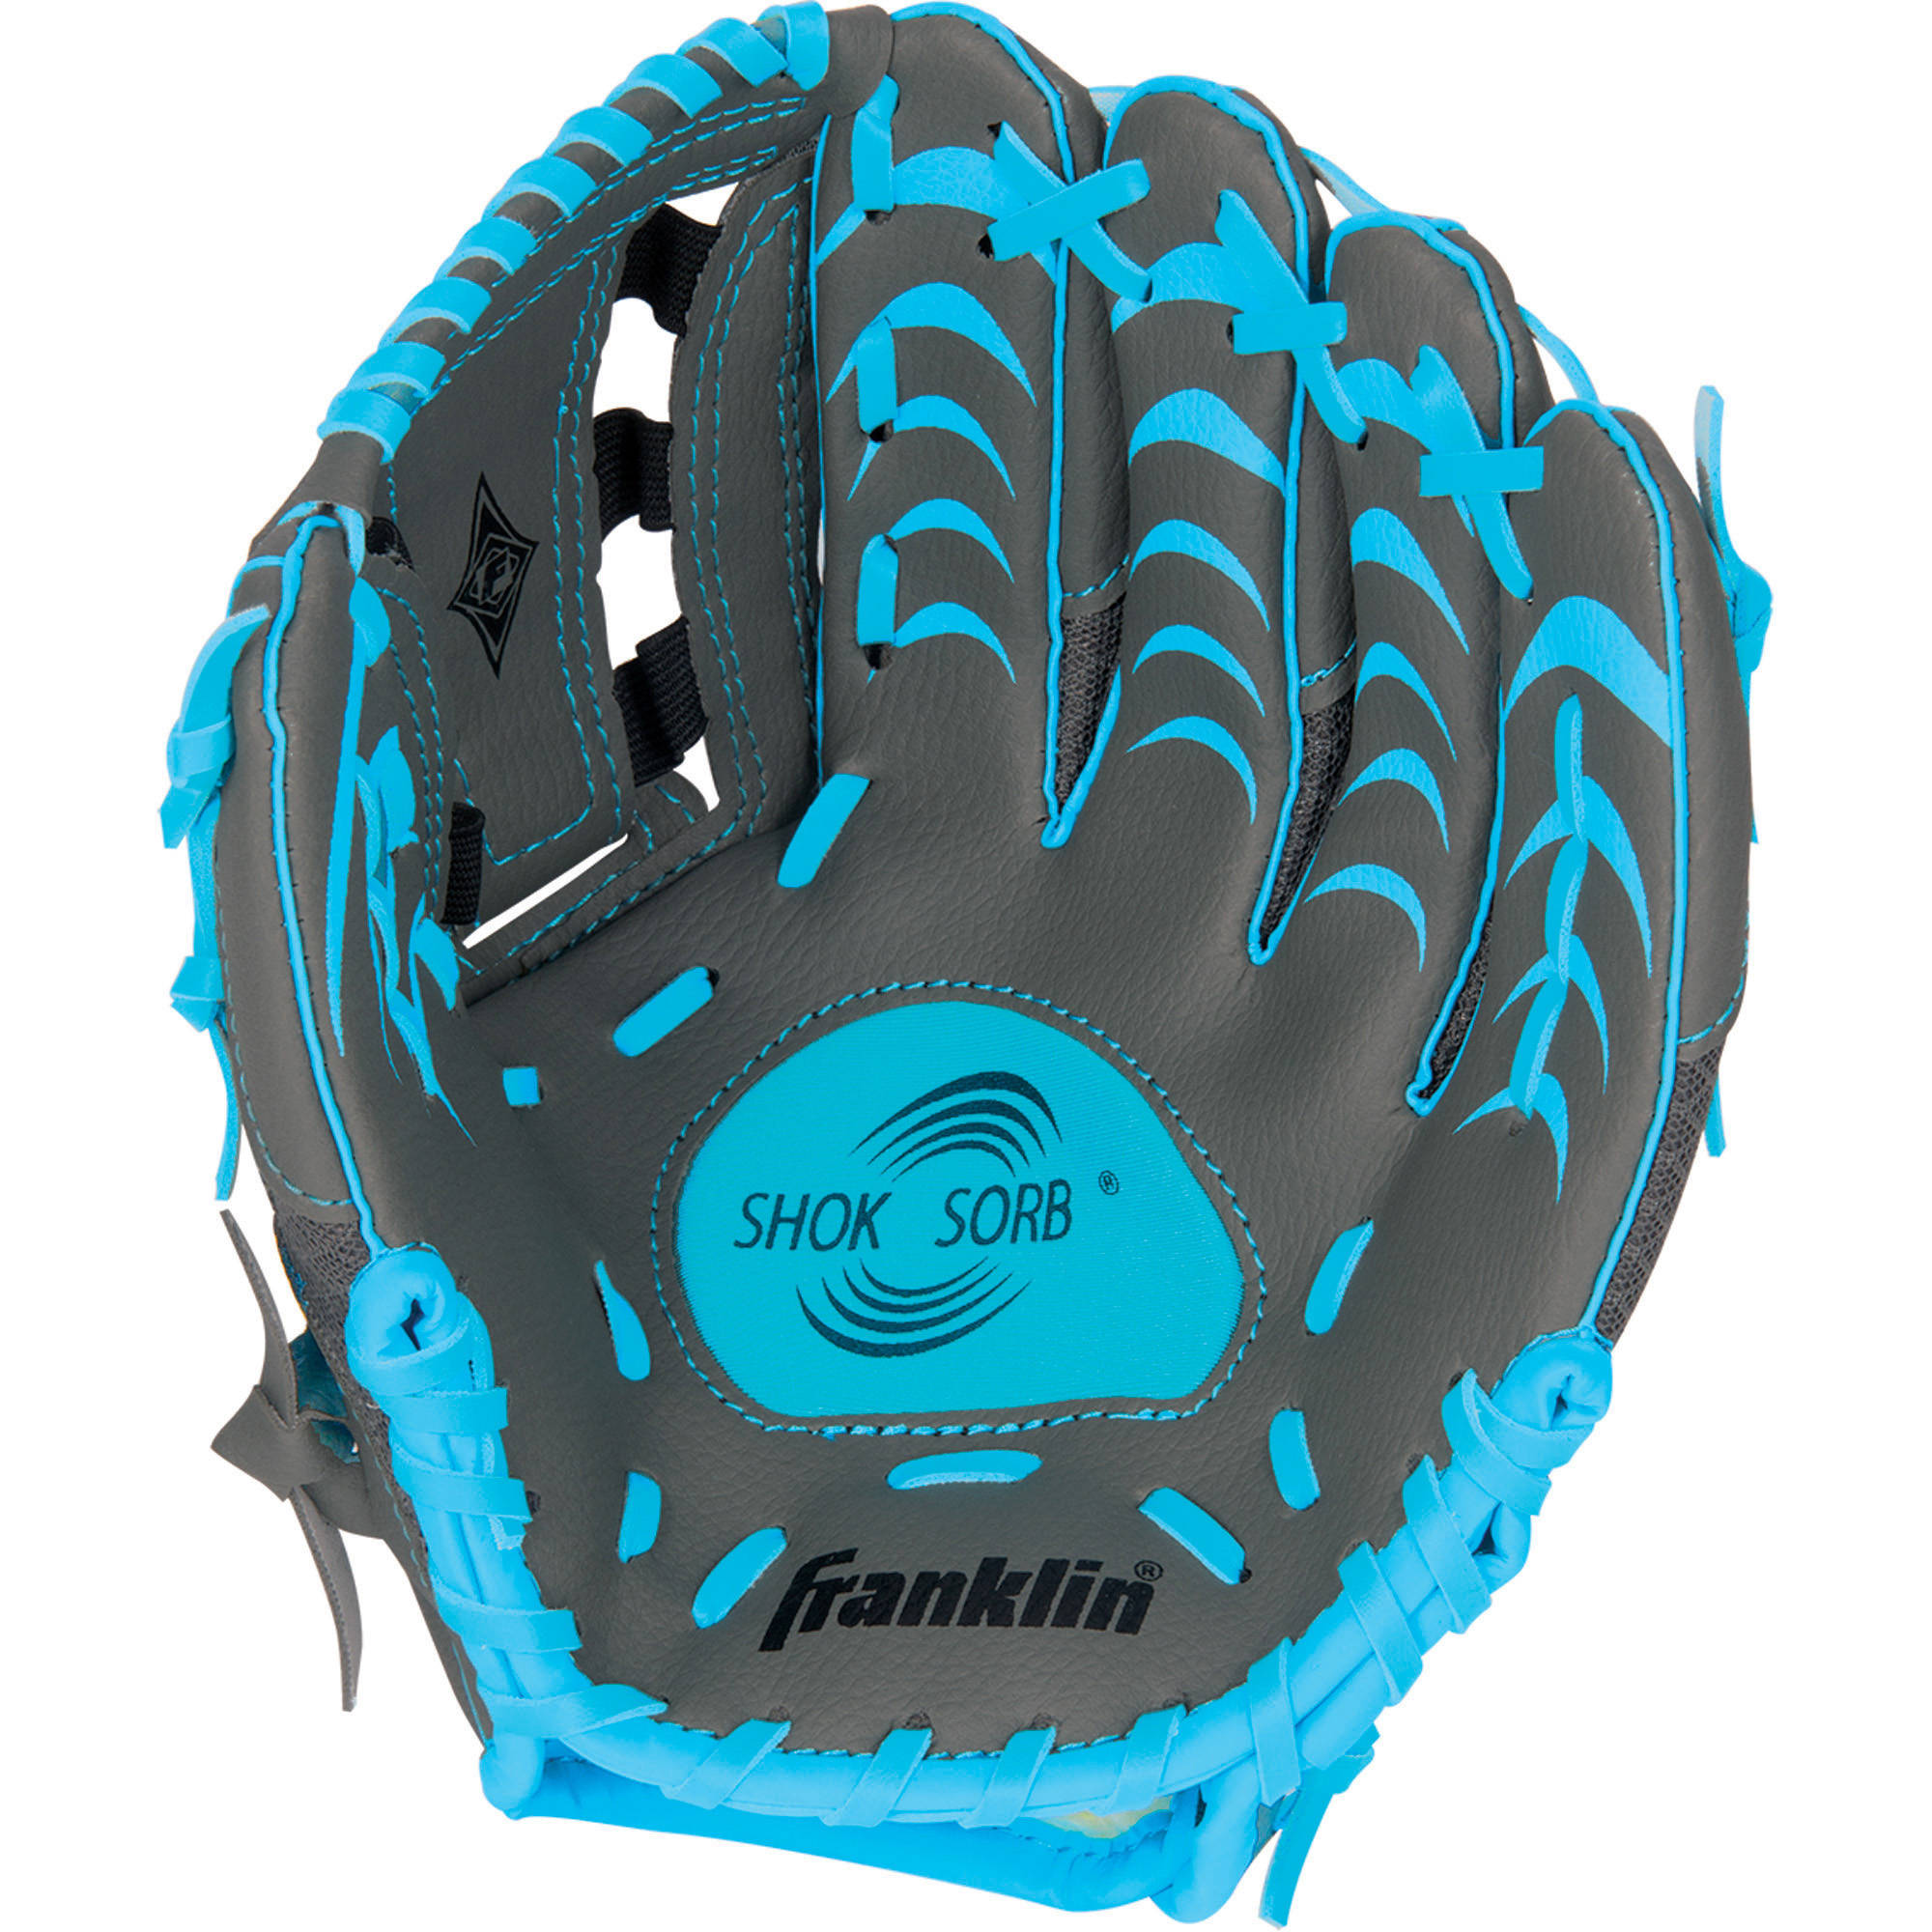 "Franklin Sports 10.5"" Infinite Web/Shok-Sorb Series Baseball Glove"